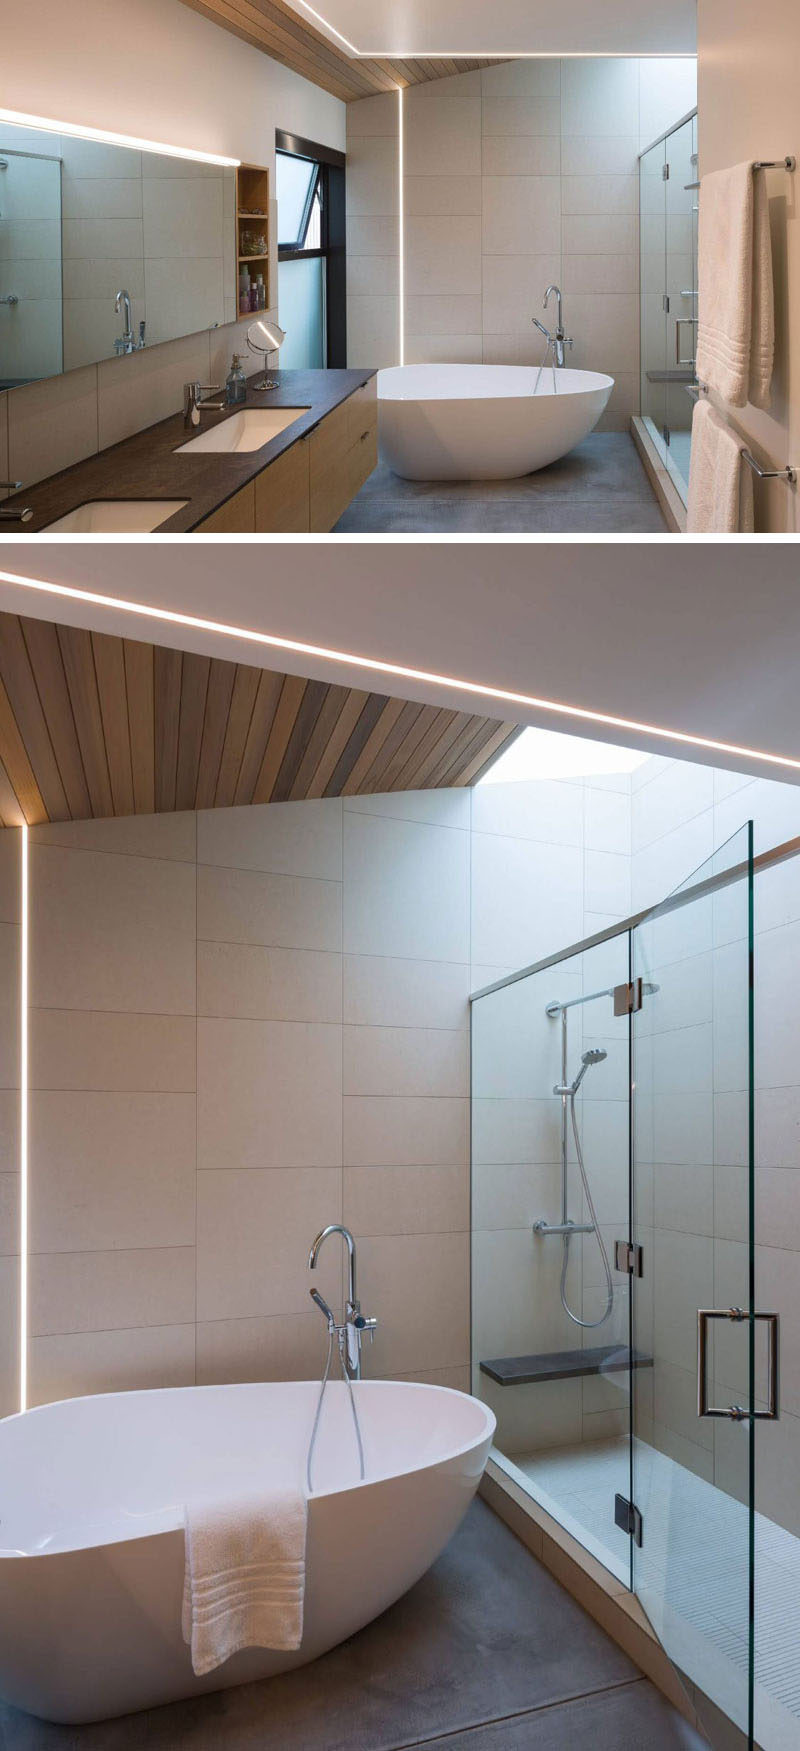 In this modern master bathroom, LED strips have been used to create evenly diffused soft lighting, while a skylight above the shower and a small window near the bath provide natural light to the space.